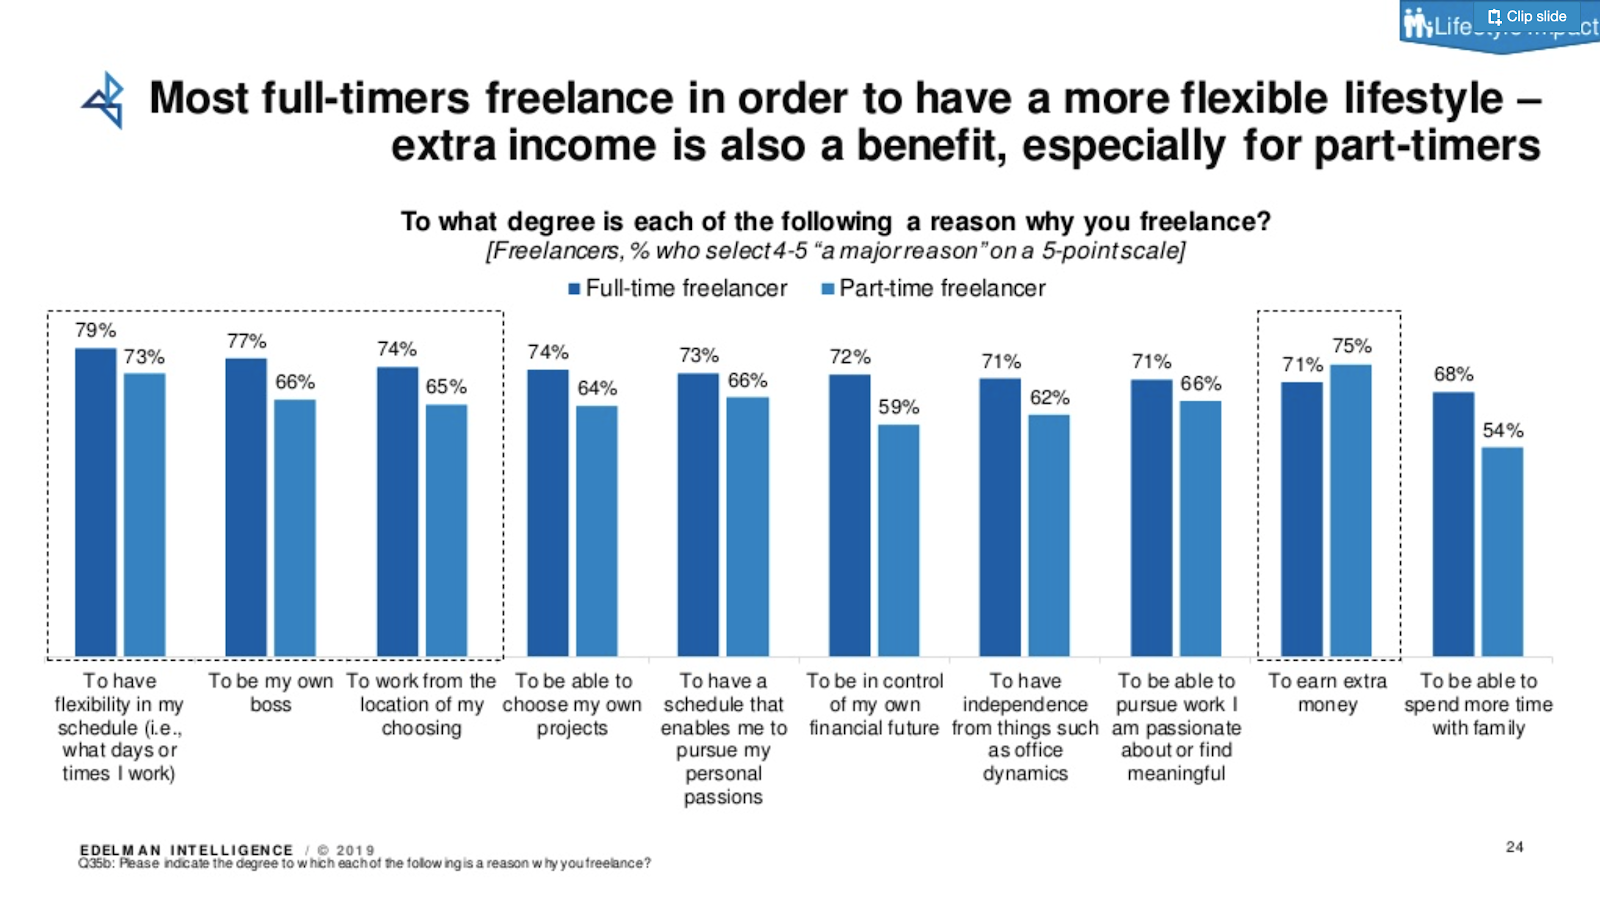 Advantages of Self-Employment. Source: Upwork's Freelancing in America Study 2019